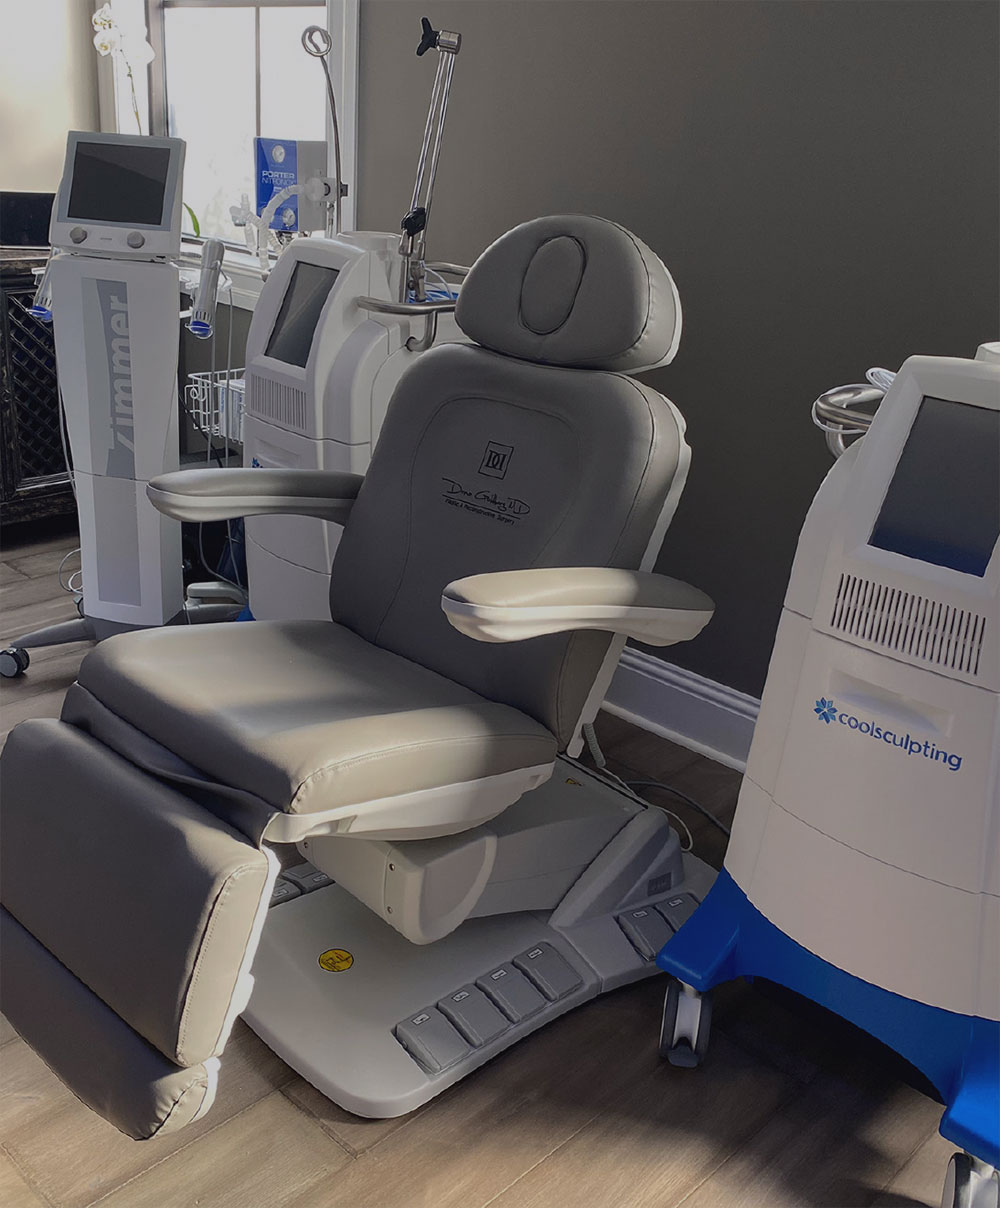 Dr Dana CoolSculpting Lounge